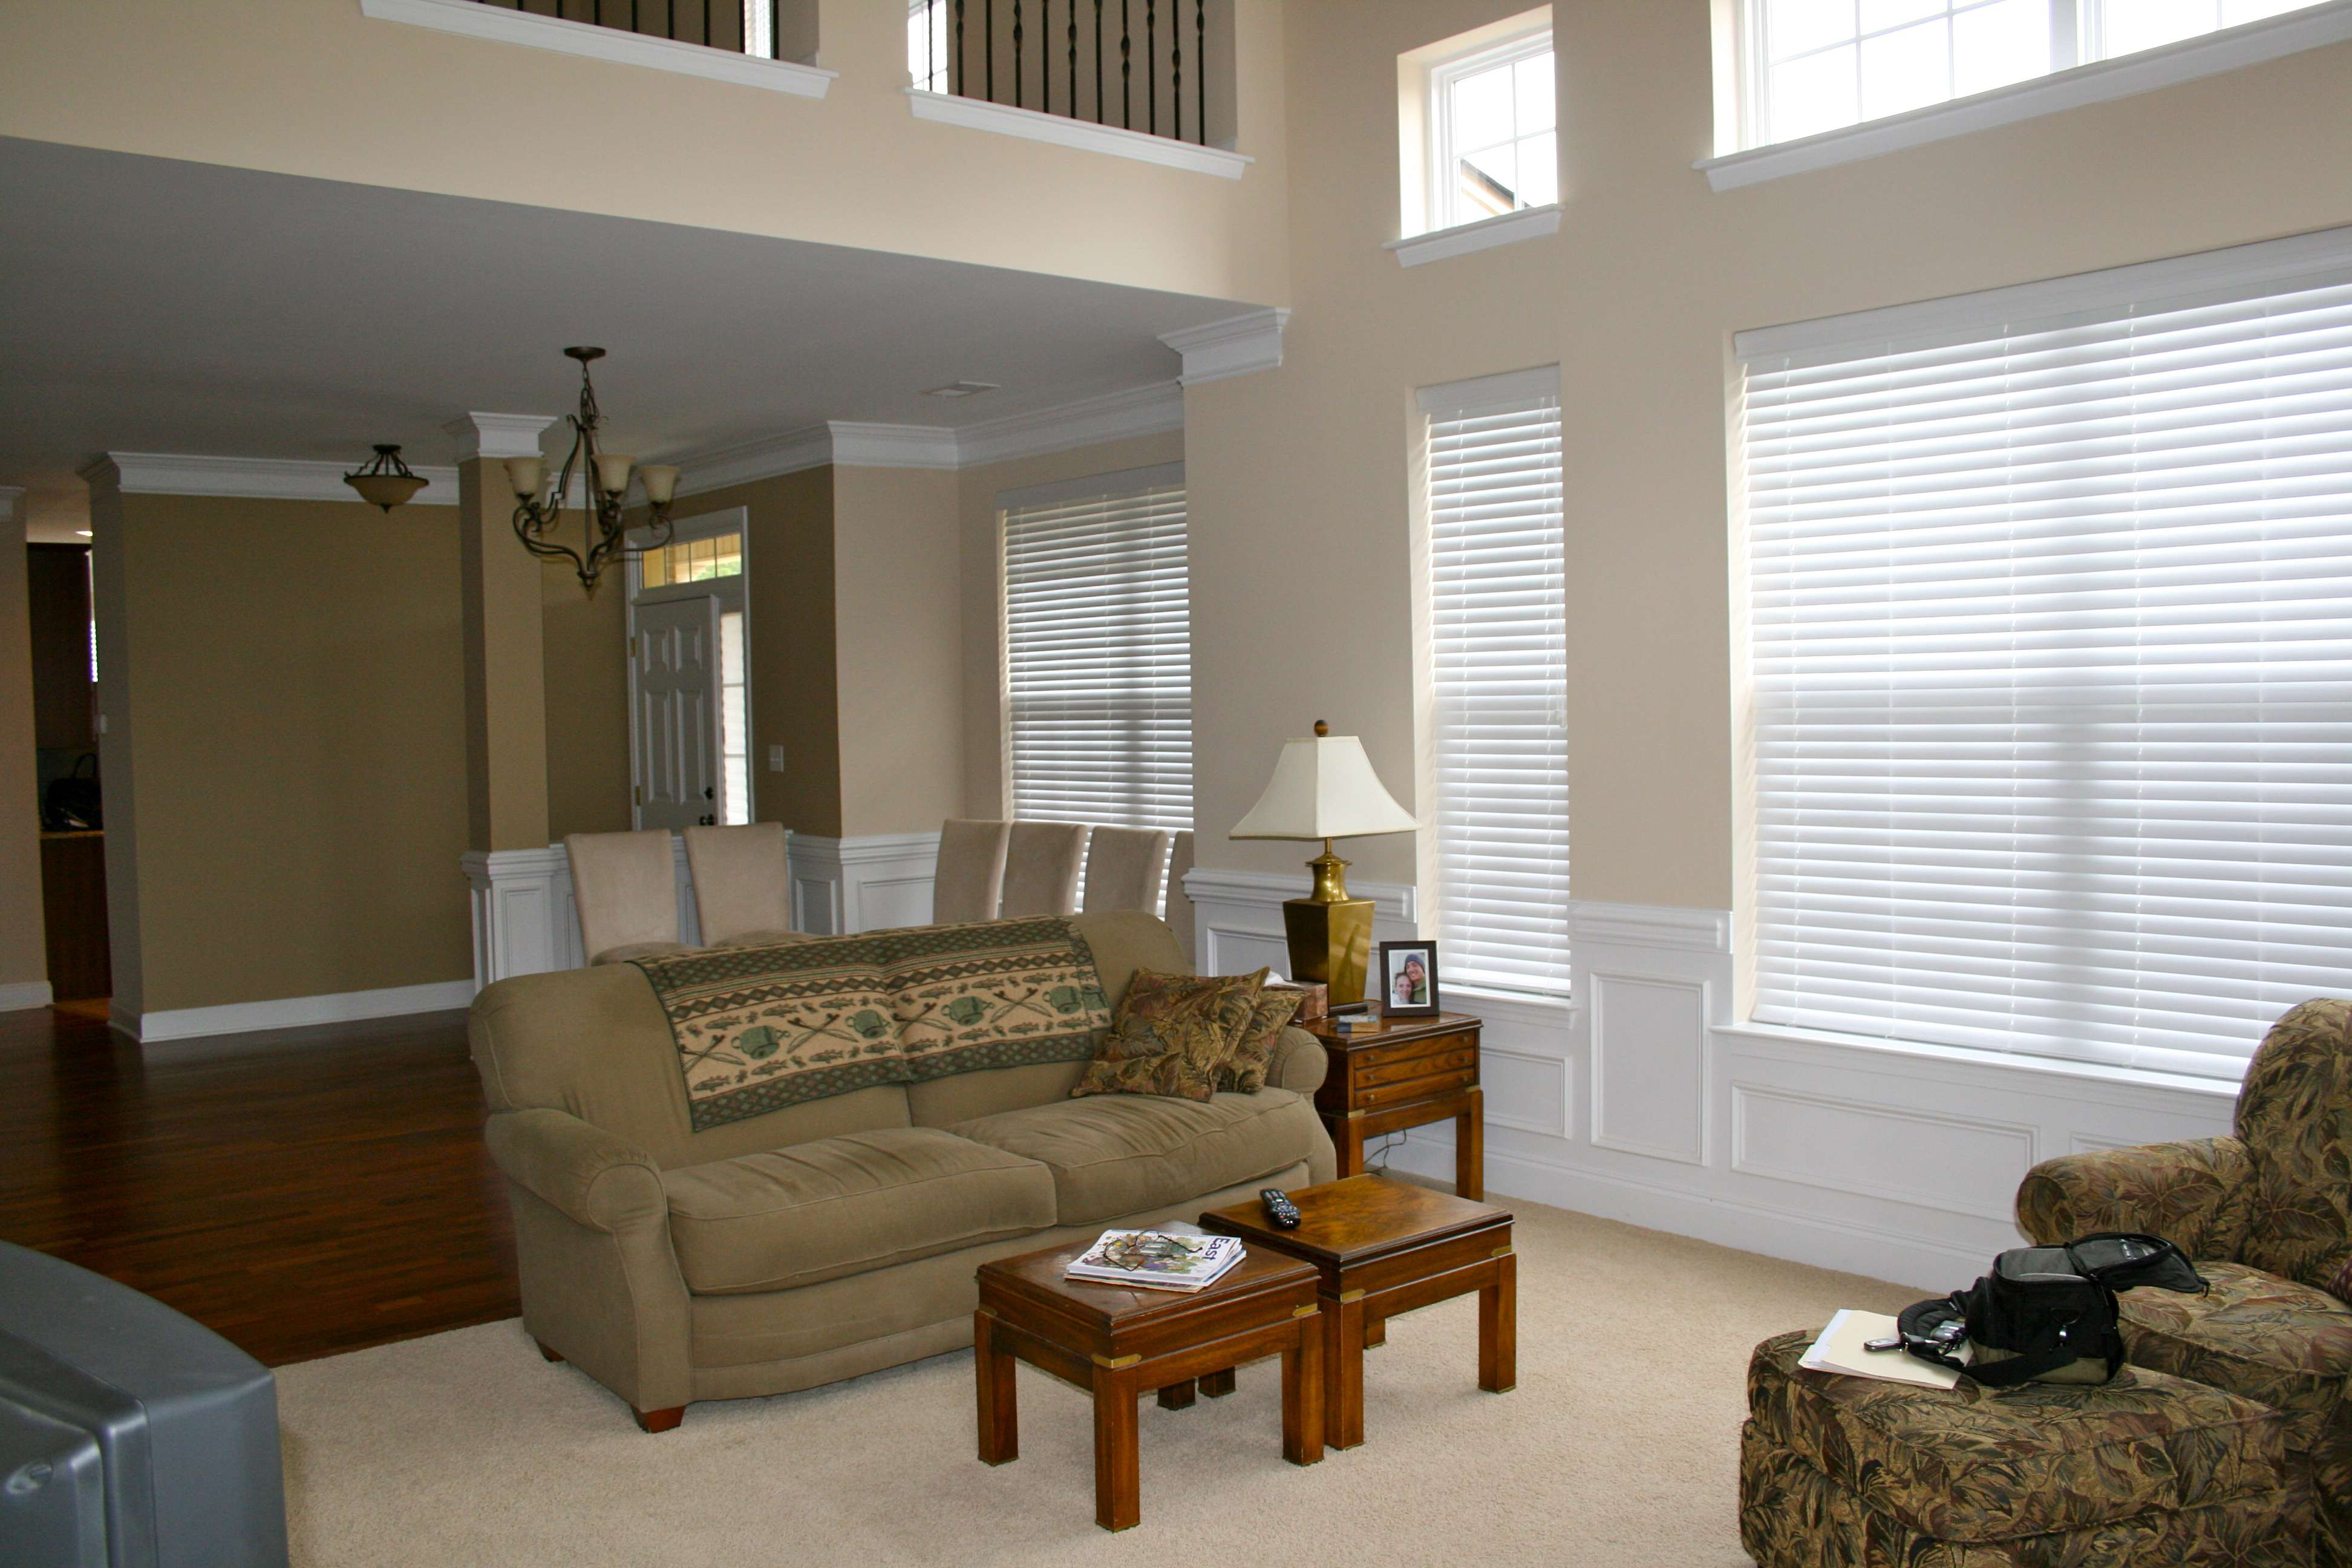 Furniture Stores In Greensboro Nc Full Size Of Antonio Used Furniture Stores Nice Home Design